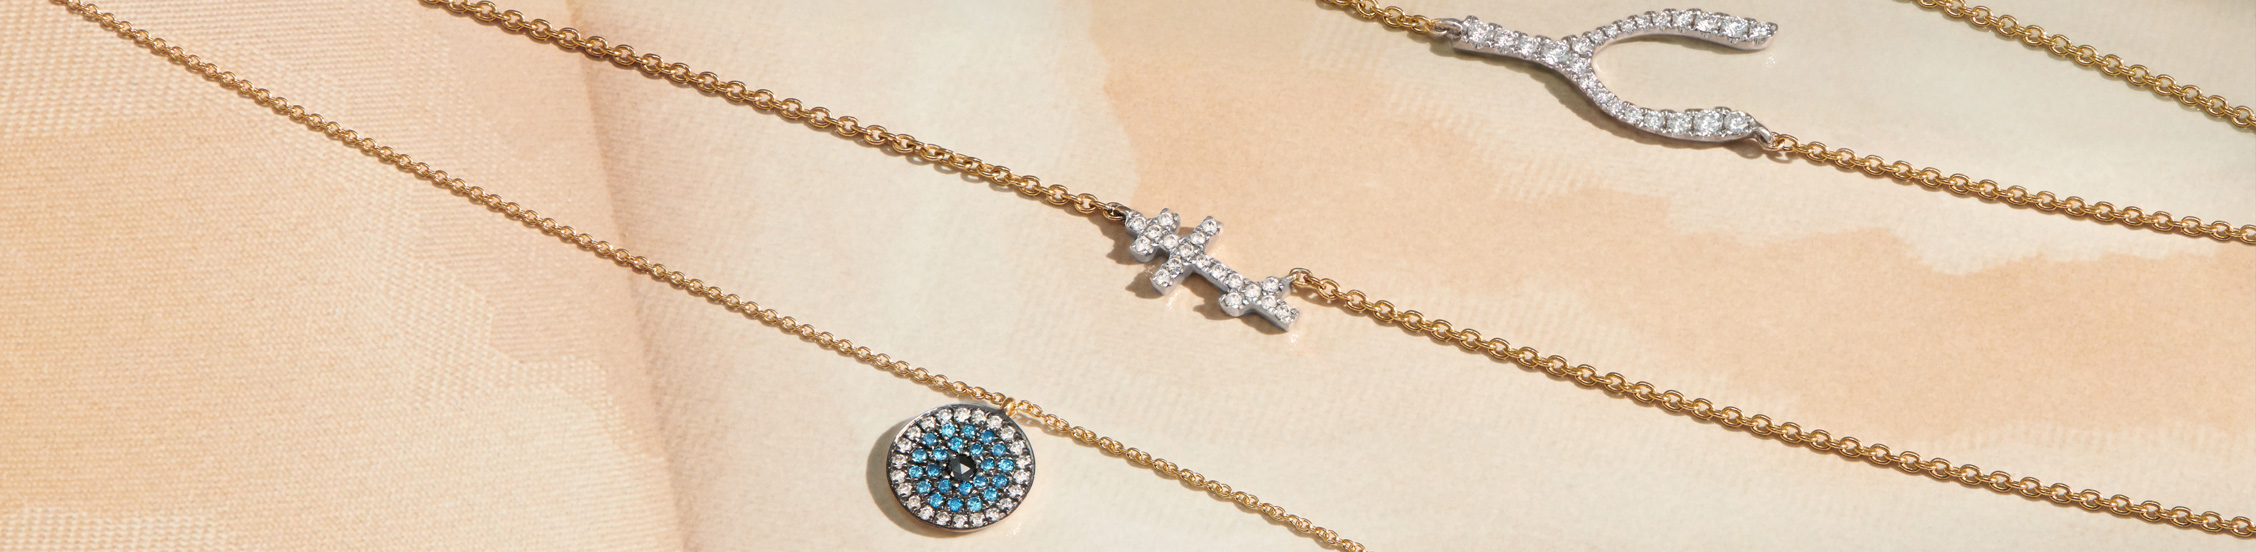 Annoushka Necklaces